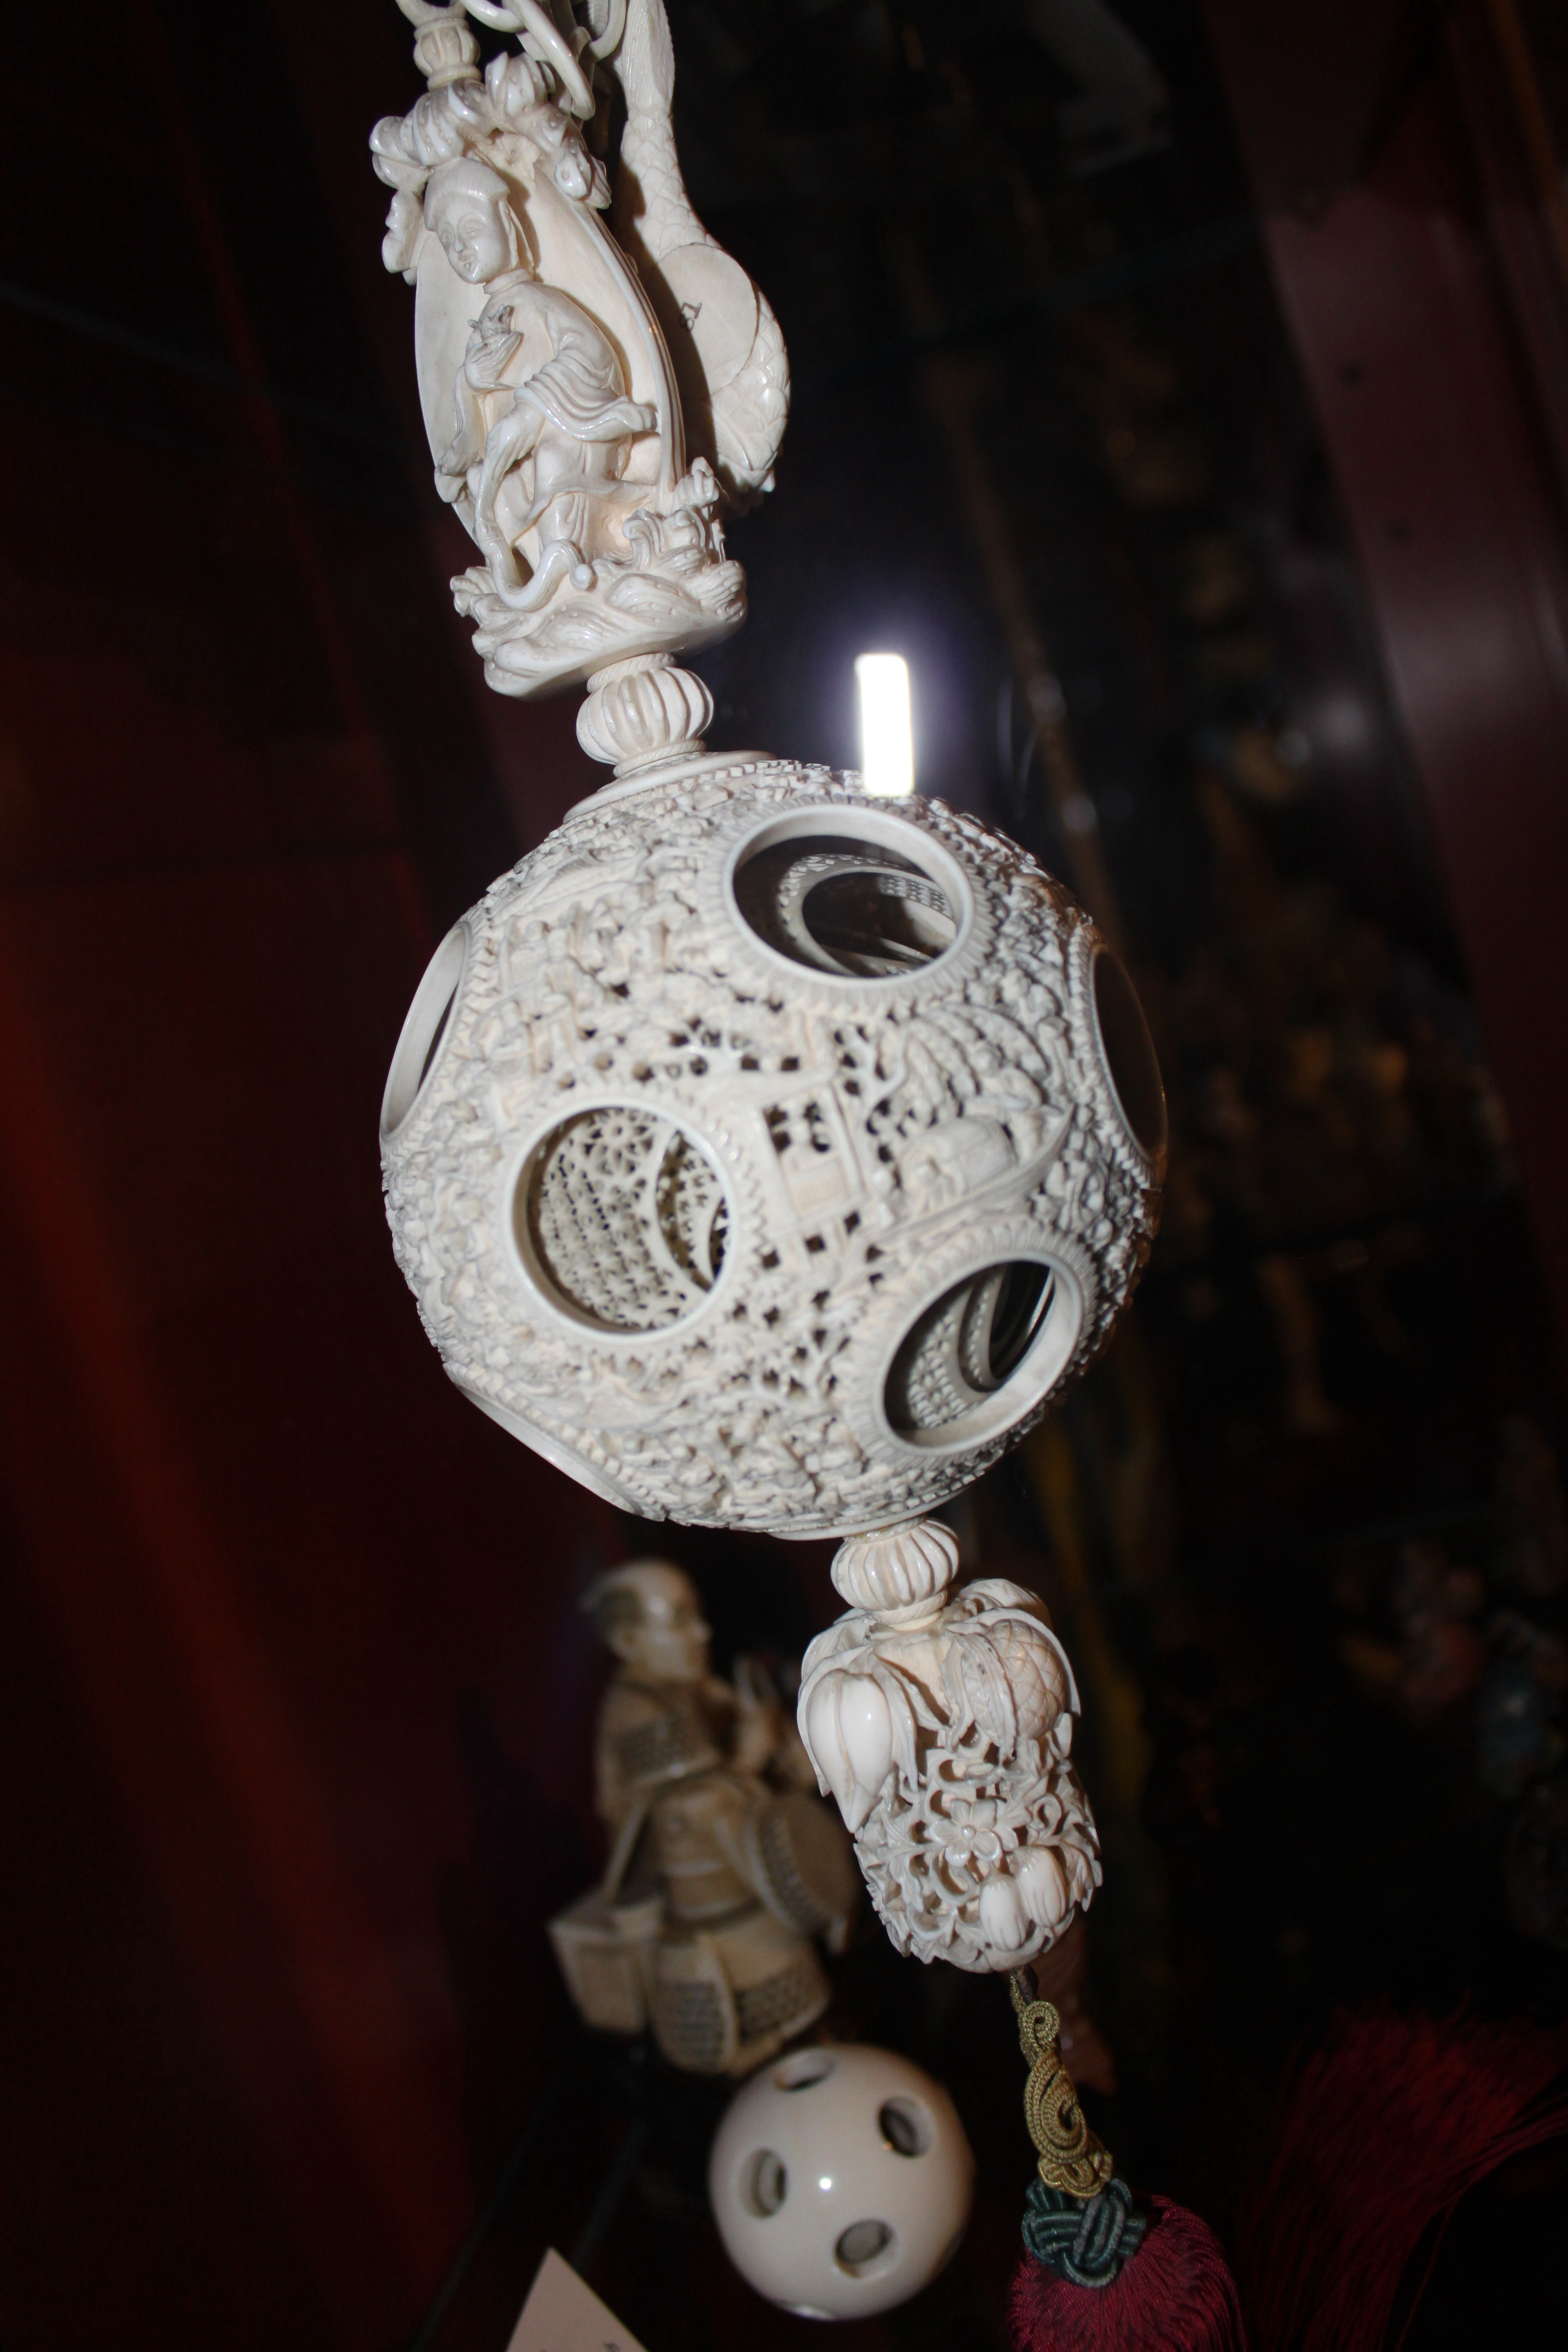 An intricately carved set of sixteen, lace-like balls, were carved in place, one within the other from a single piece of ivory. The set was likely used as part of a Hindu religious ceremony. Each of the sixteen balls fully rotates within its larger counterpart and is said to have required three generations in India to complete.